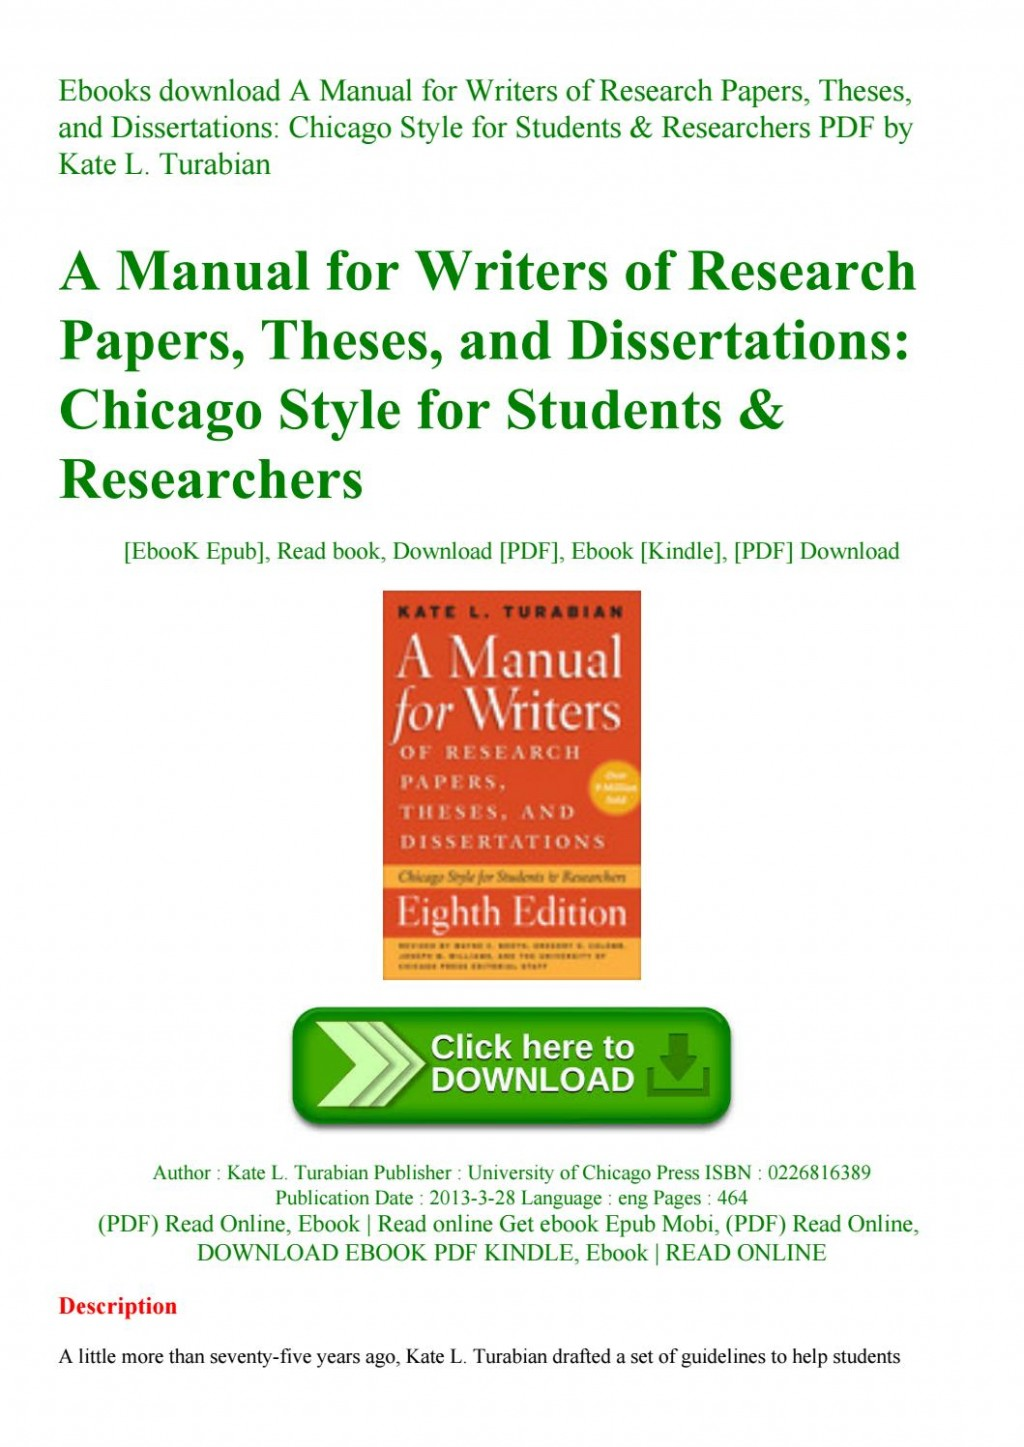 001 Research Paper Page 1 Manual For Writers Of Papers Theses And Dissertations Eighth Edition Incredible A Pdf Large